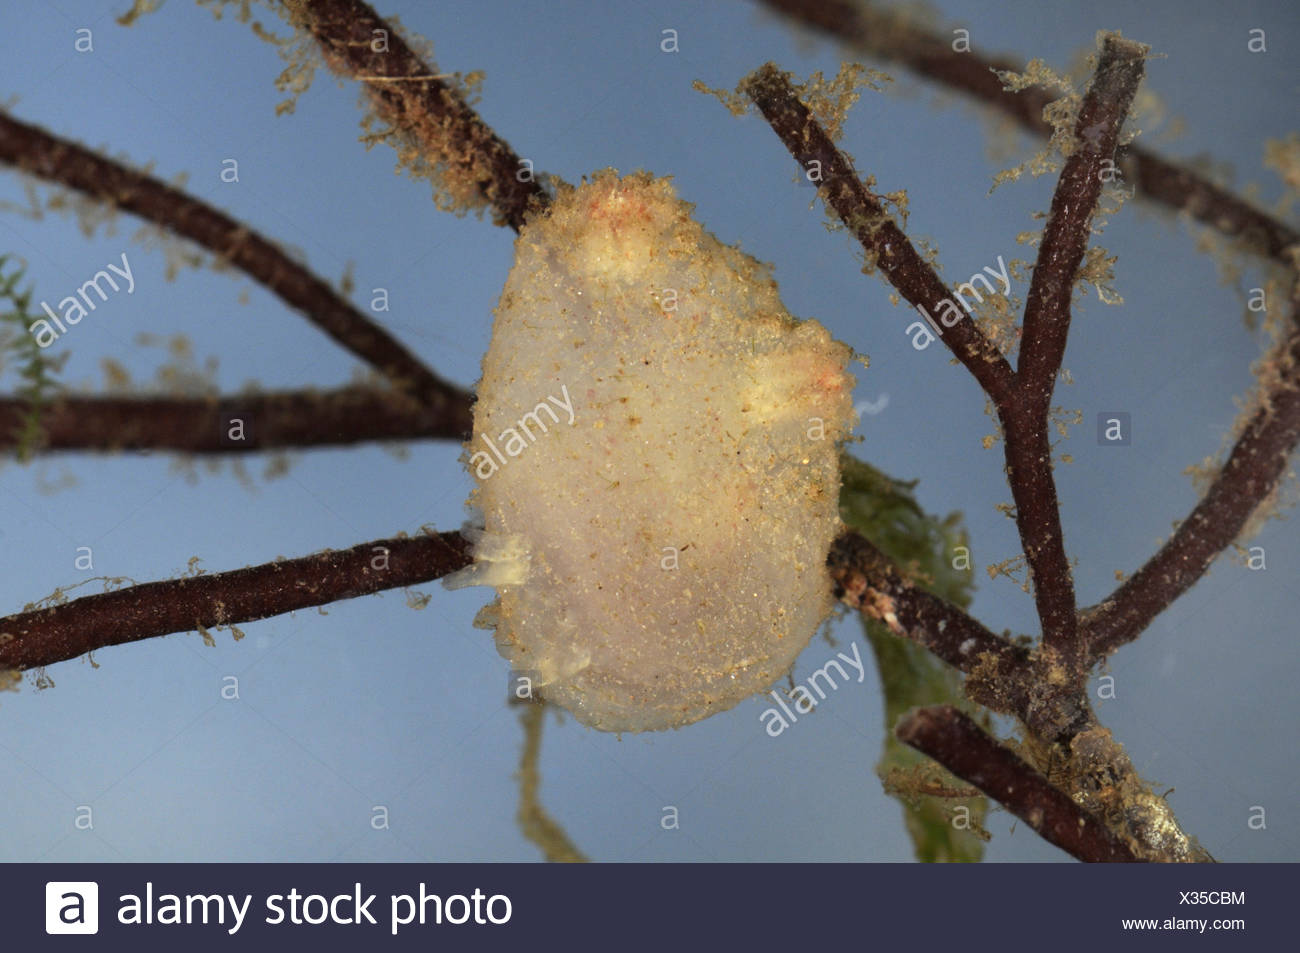 Sea Squirt - Ascidiella aspersa - Stock Image